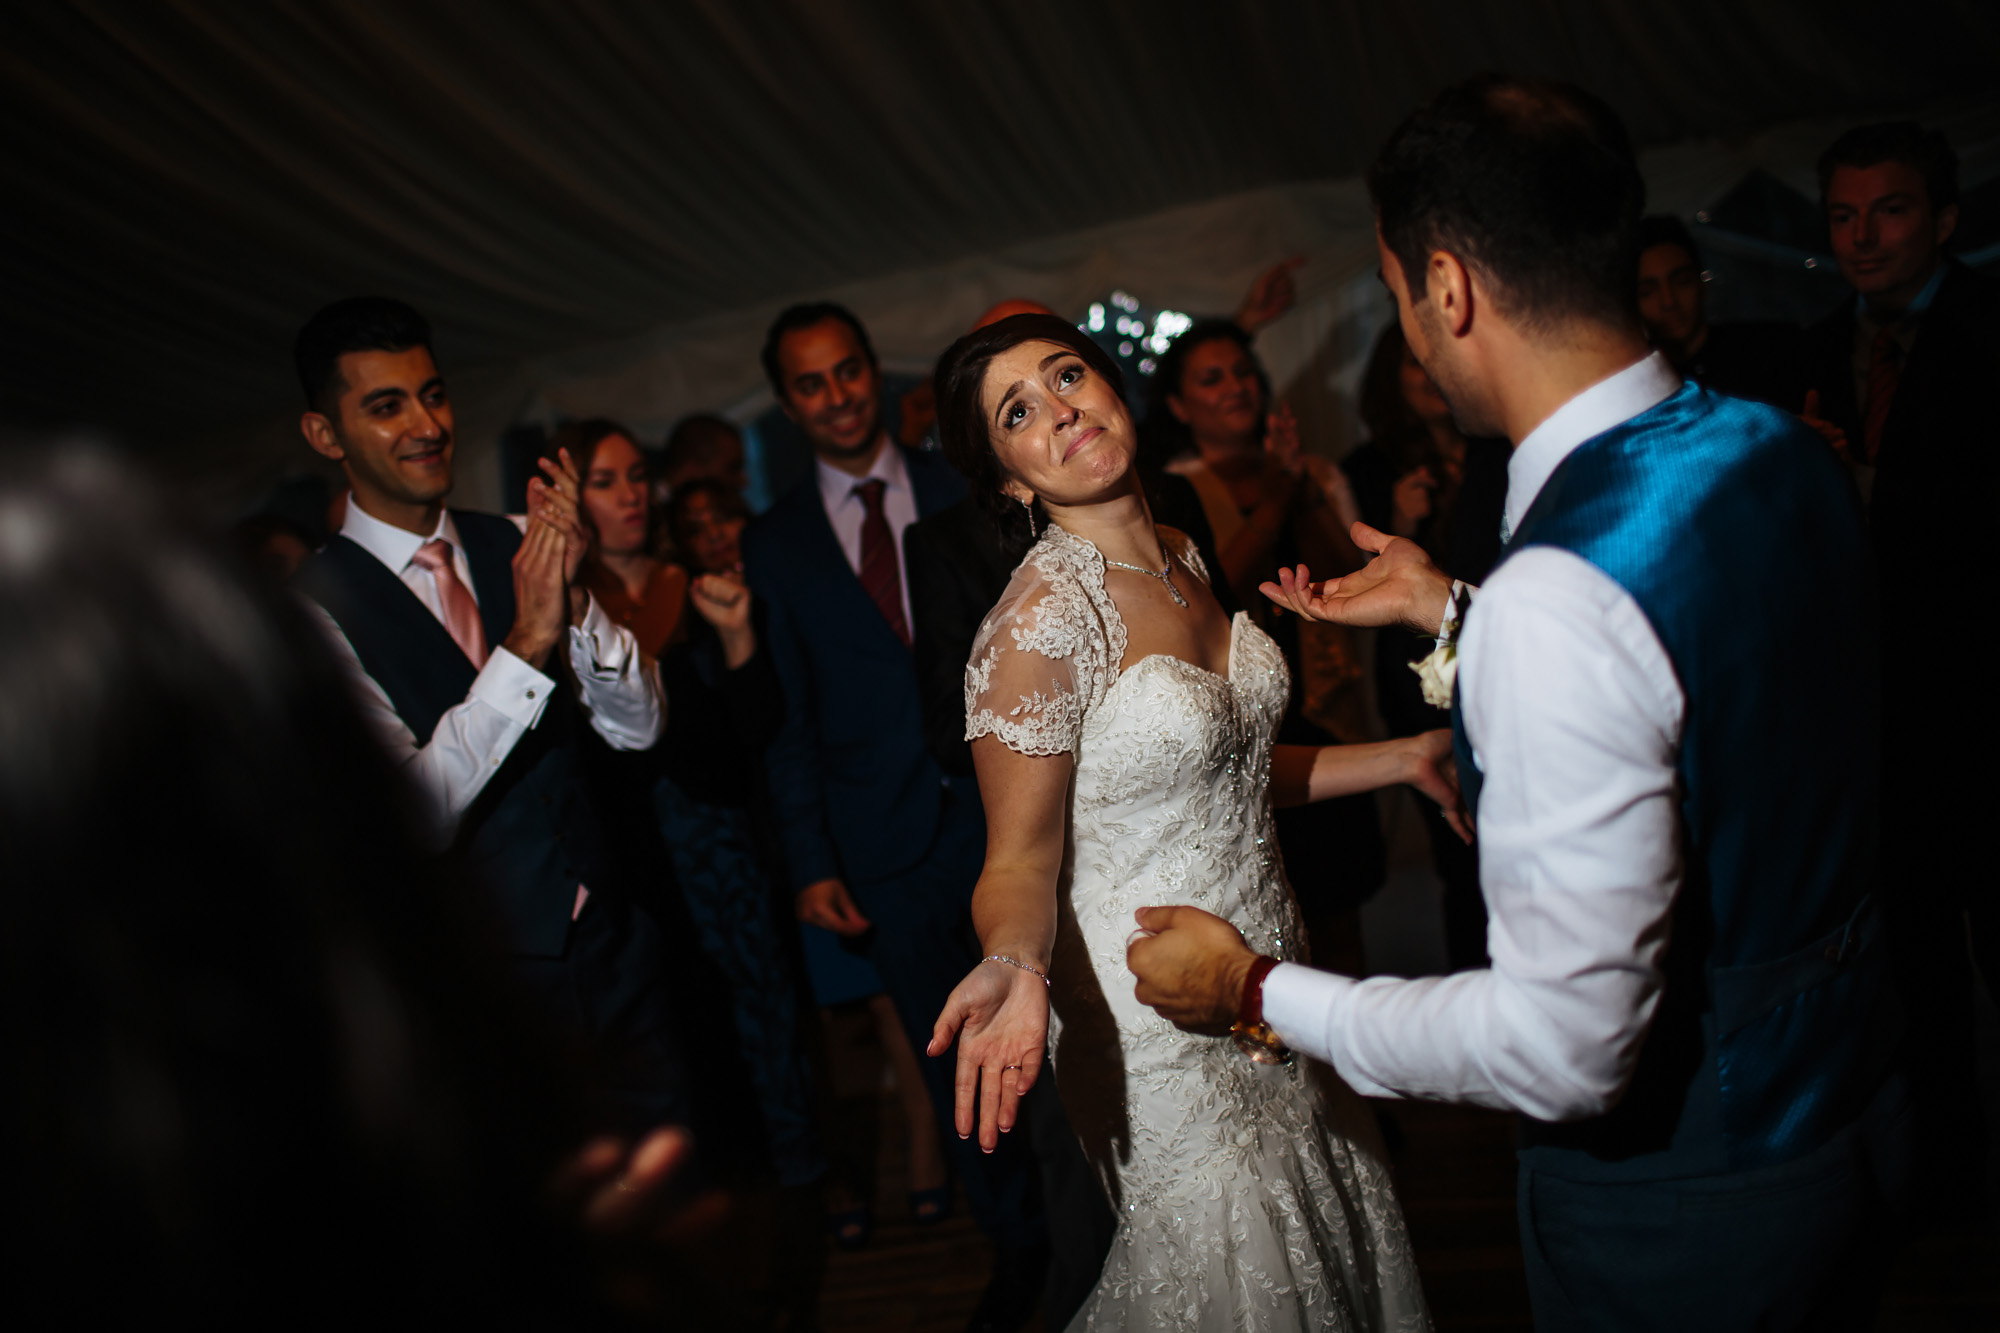 Bride laughing and dancing at a wedding